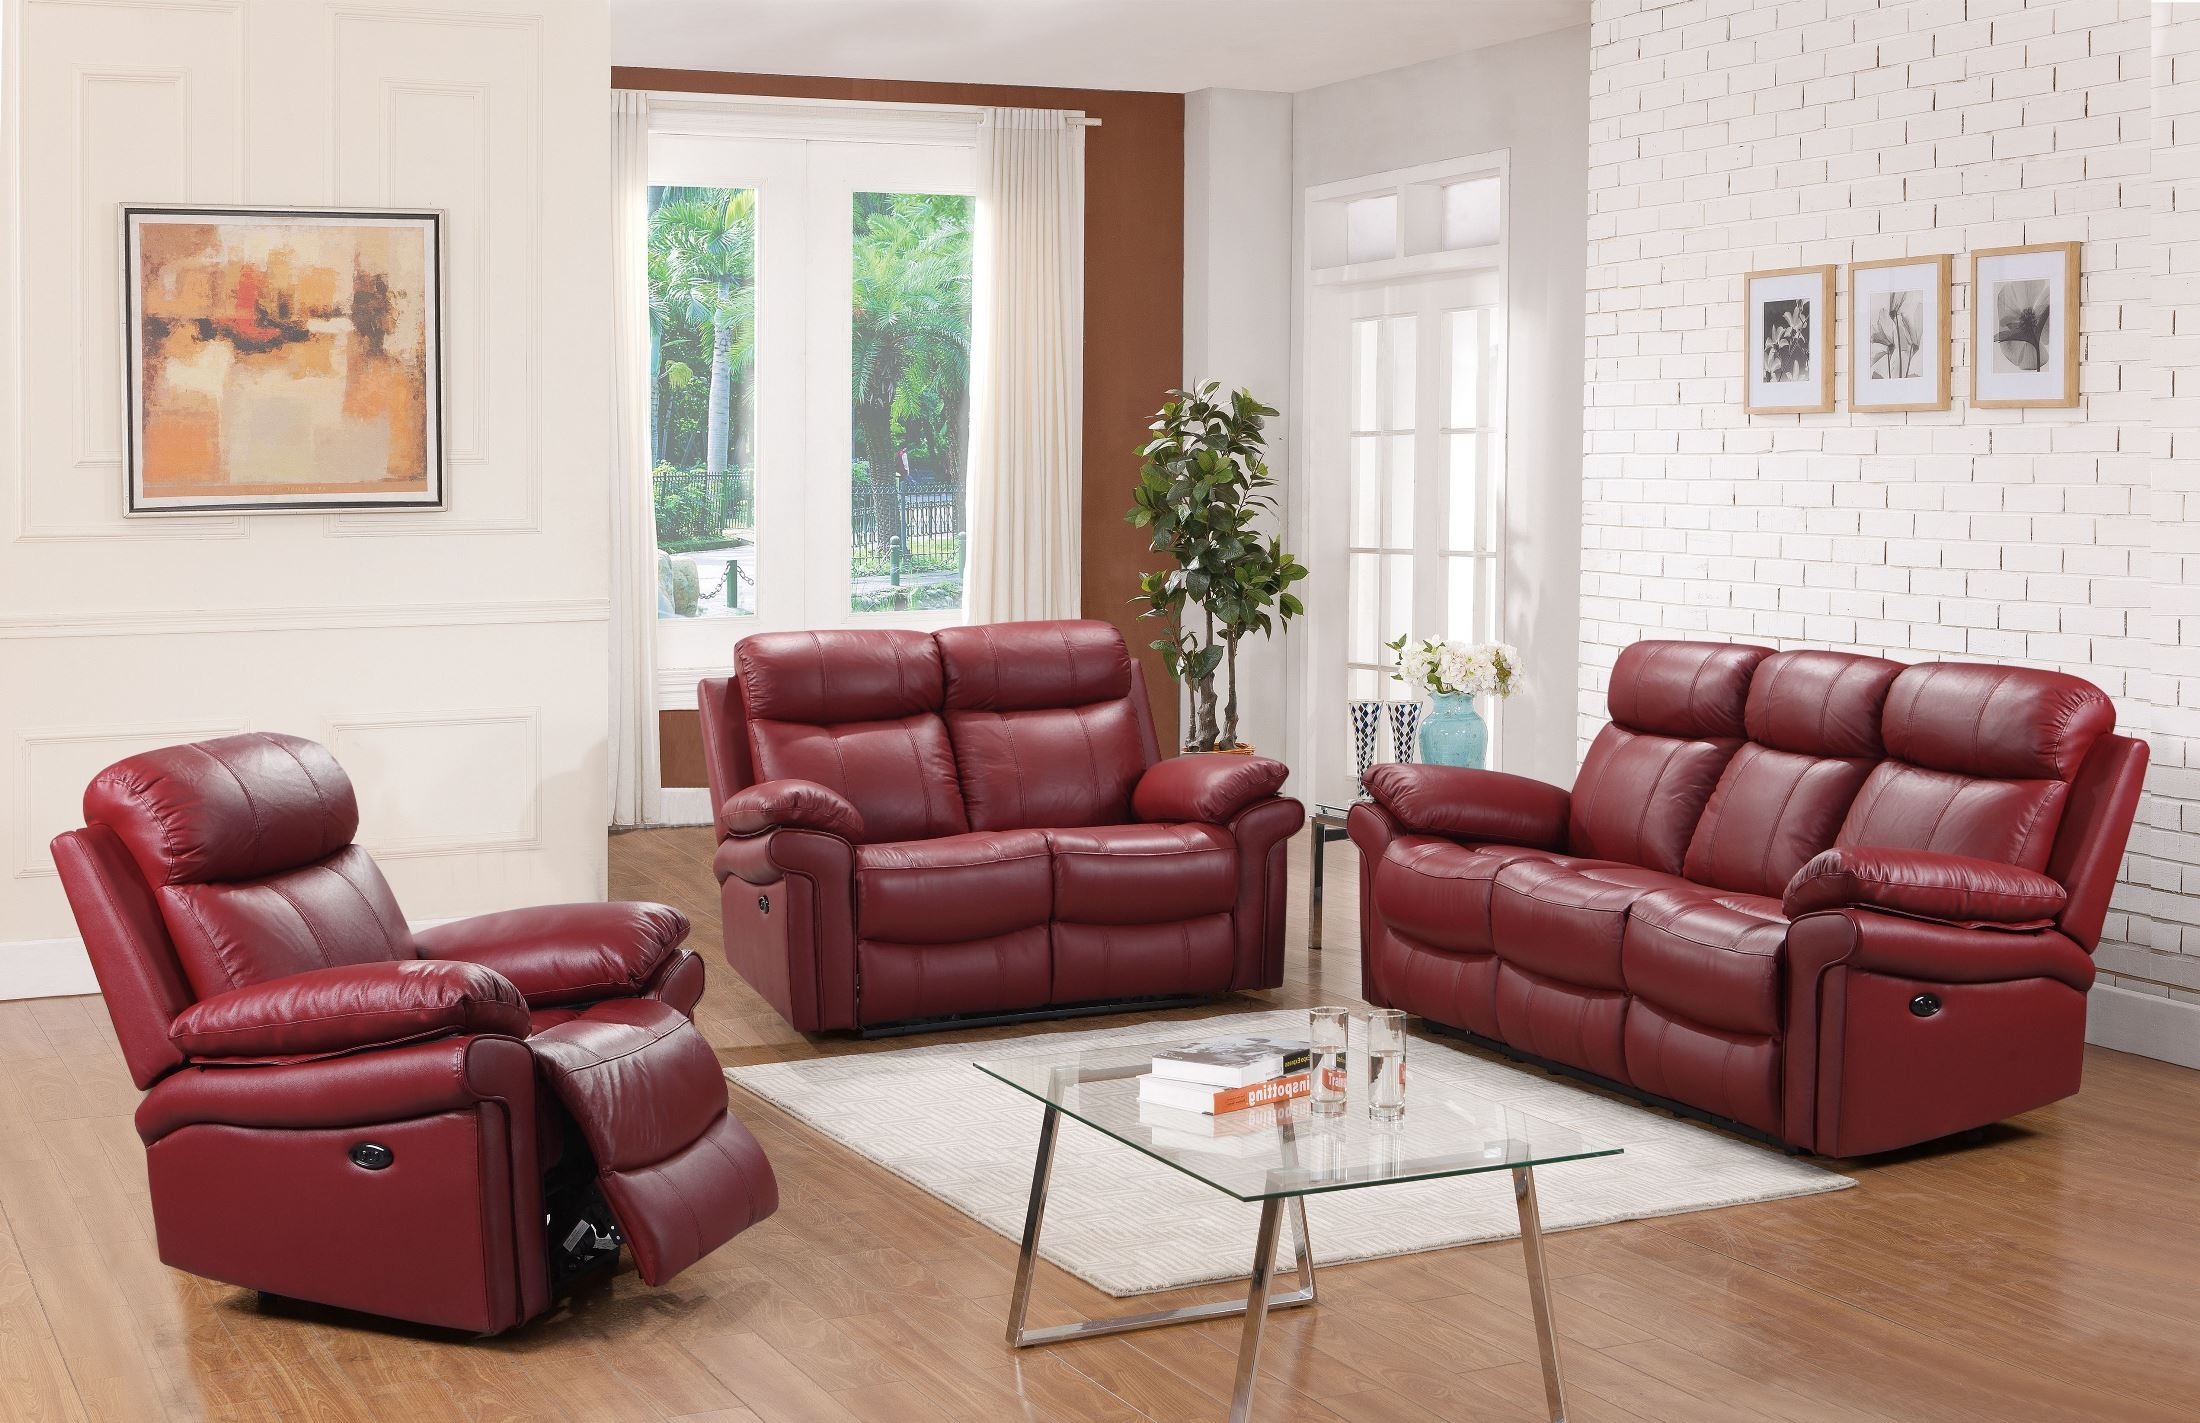 Leather Italia Usa Shae Joplin Red Leather Power Reclining Living throughout Red Leather Living Room Set